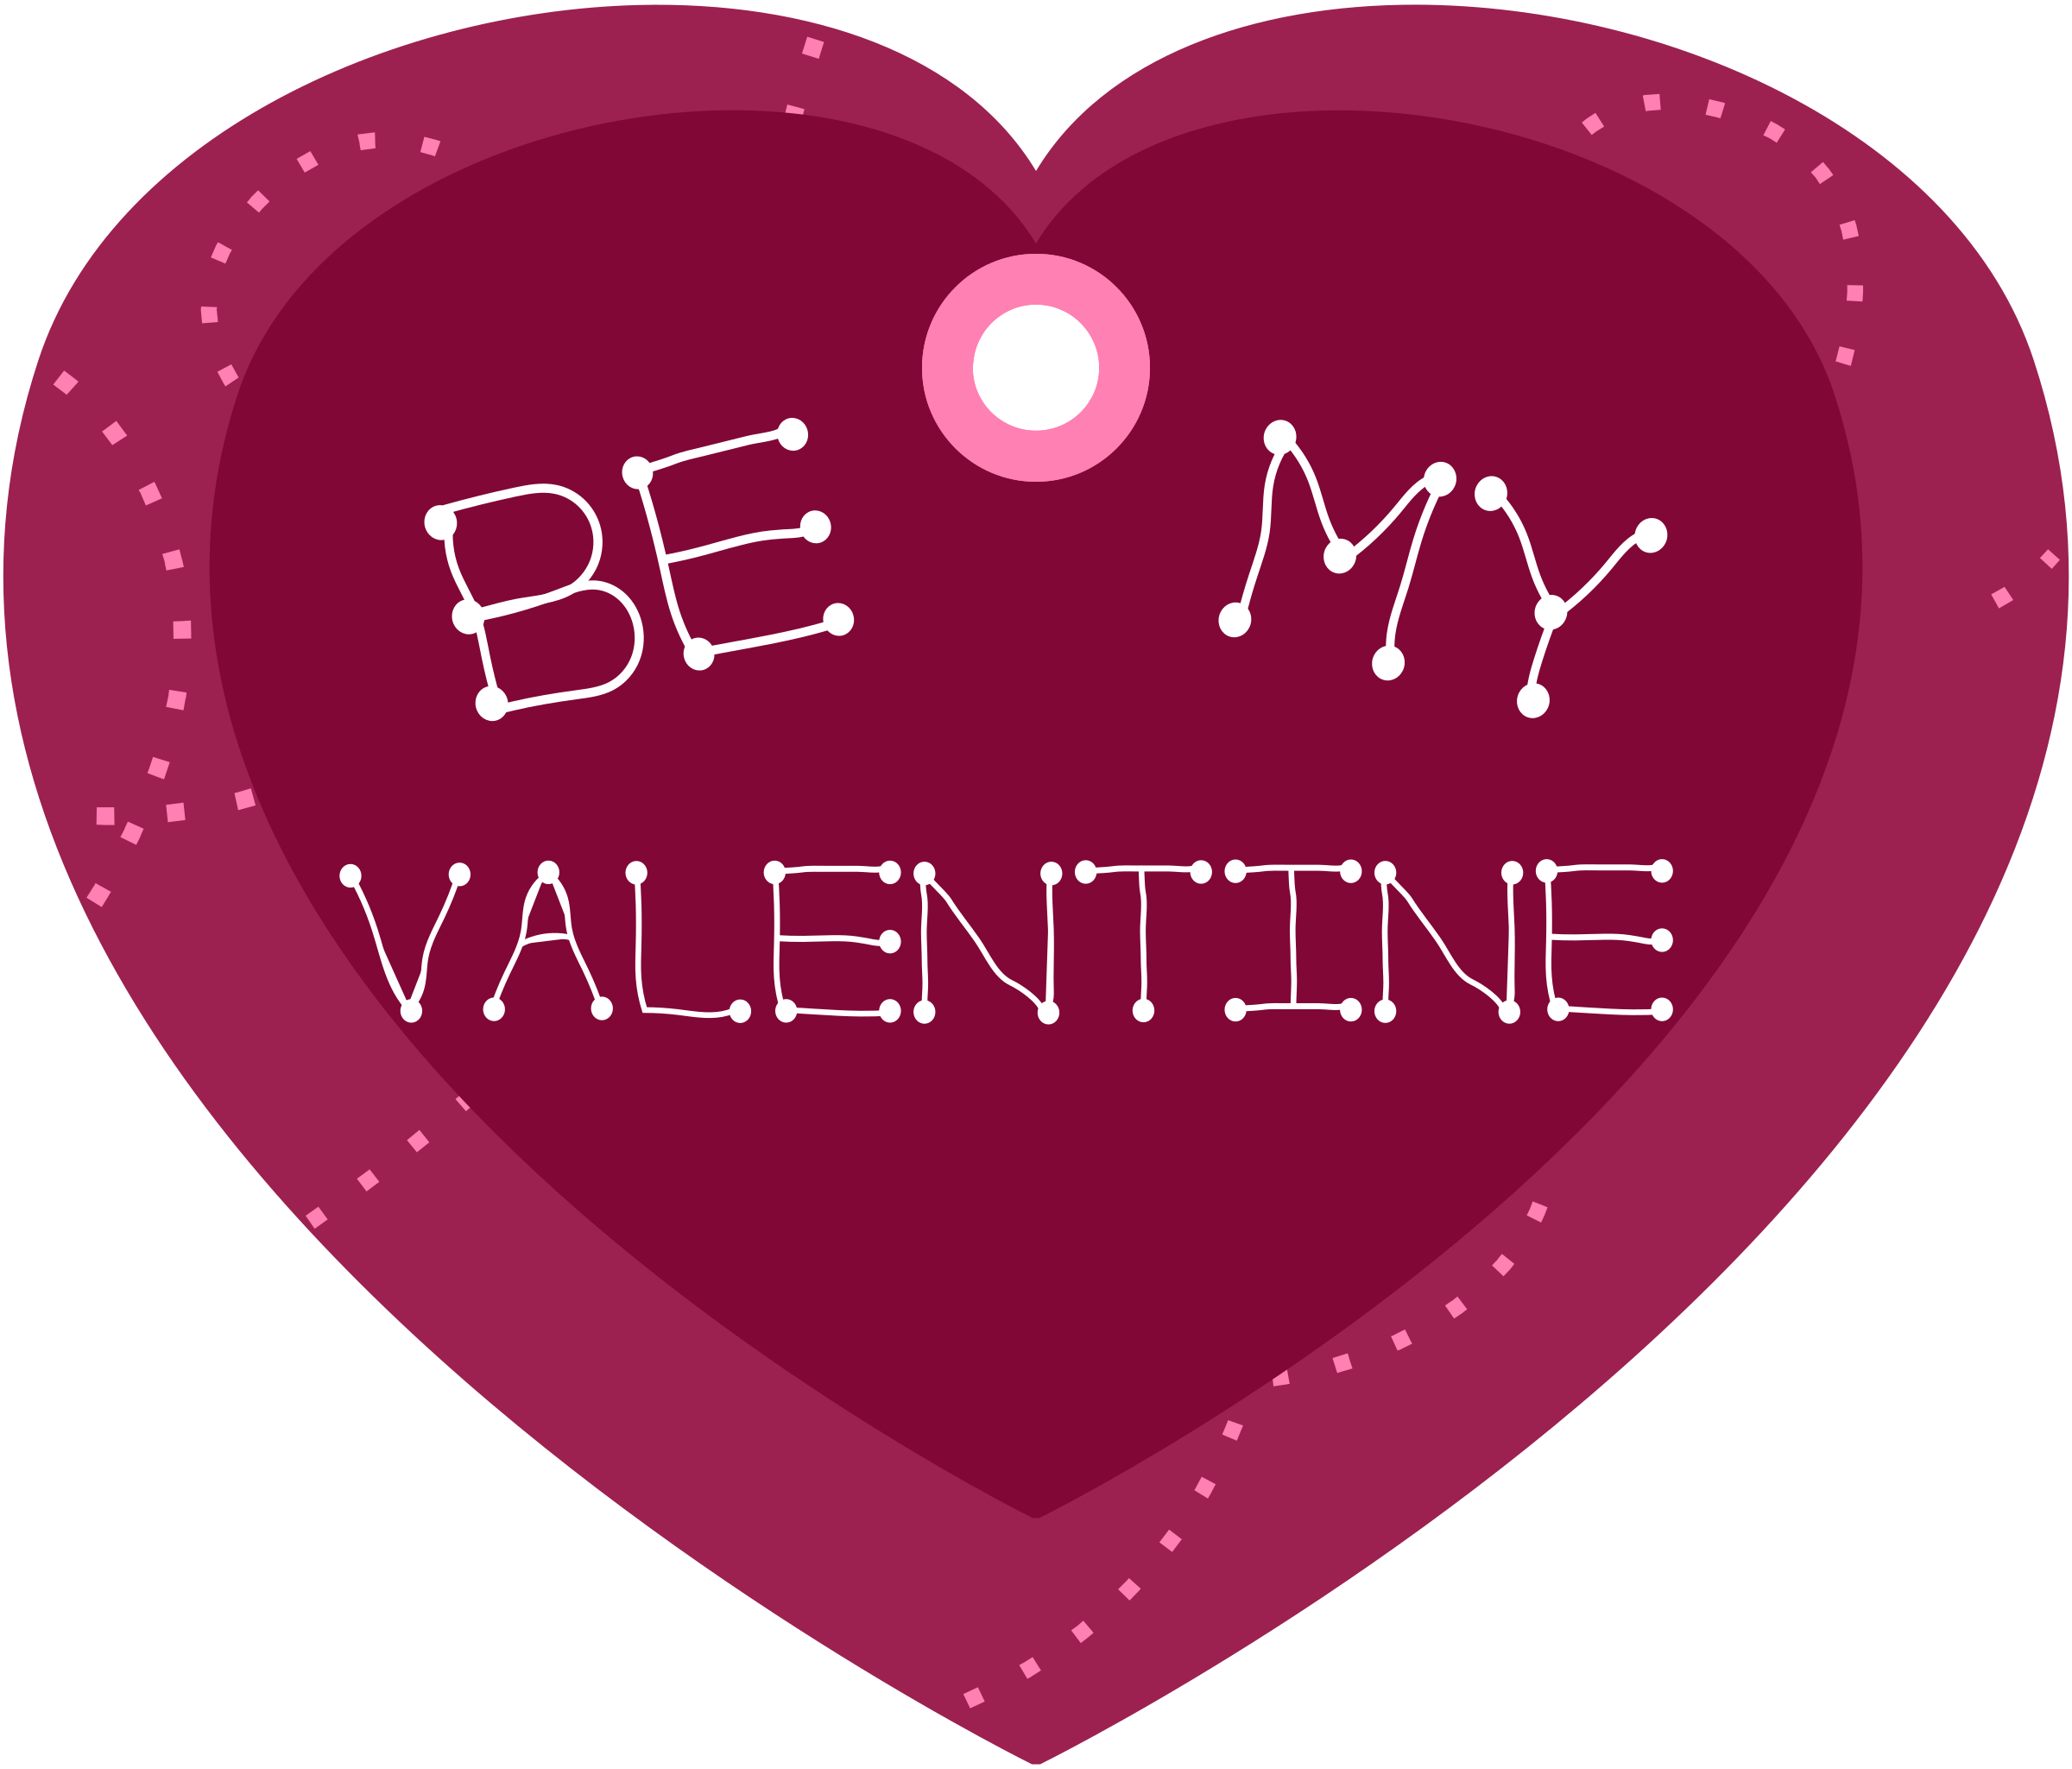 Will you be my valentine png. Heart shaped gift tag